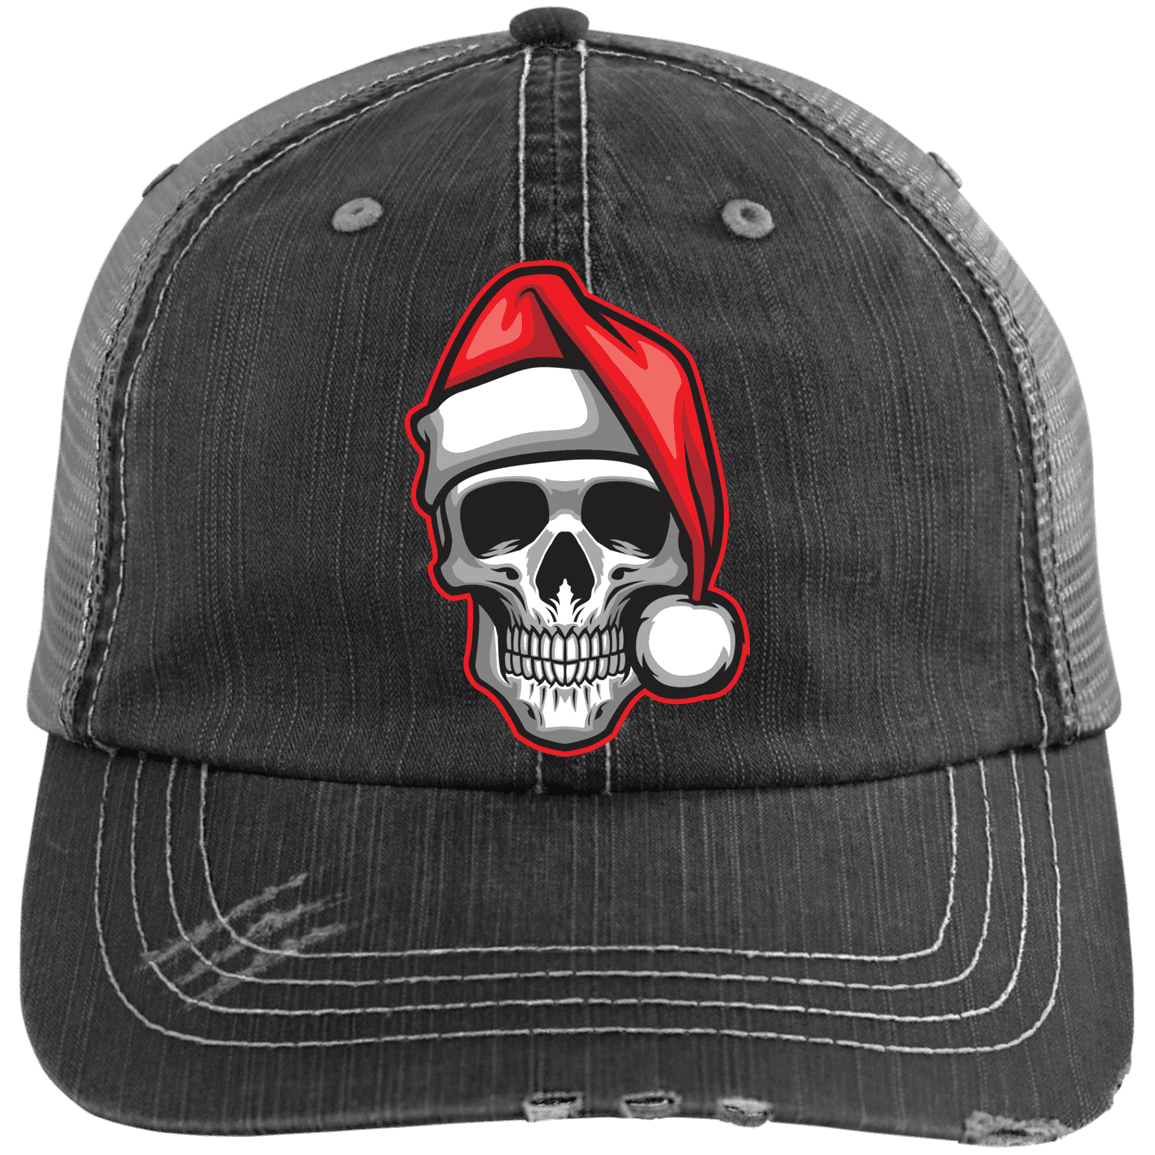 Santa Skull Distressed Trucker Cap